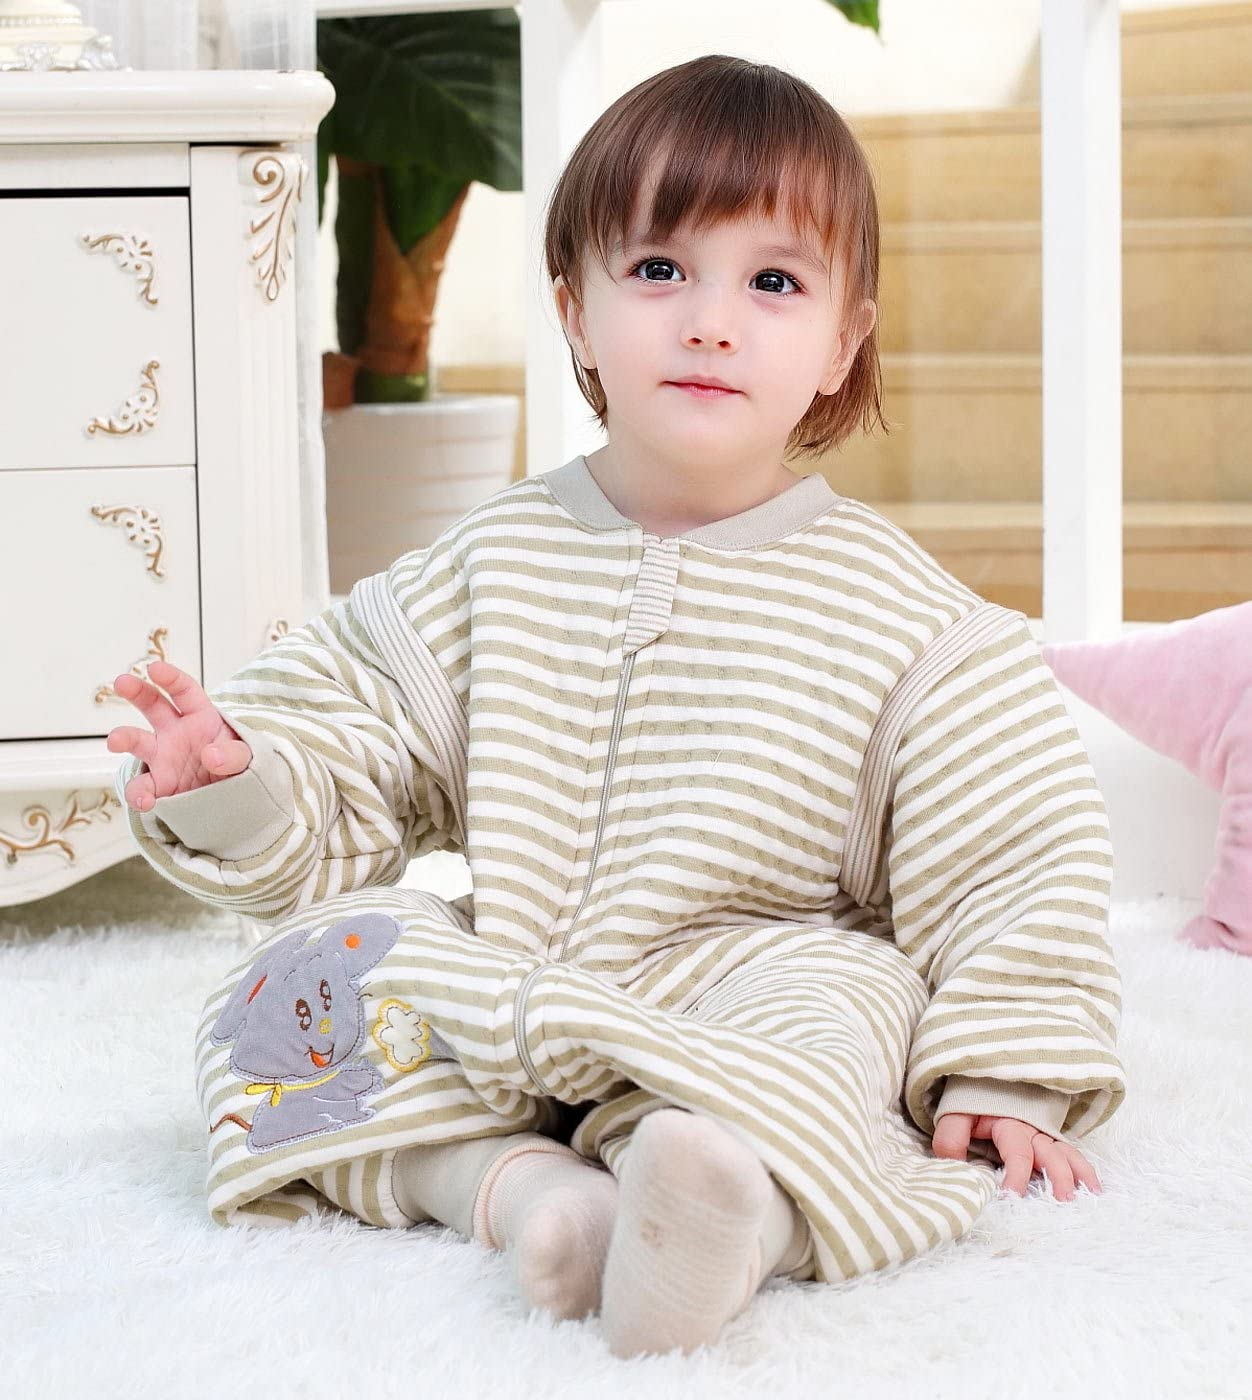 FEOYA Toddler Sleeping Bag with Arms Baby Sleeping Bag Arms Detachable Sleeping Sack with Baby Boy Girl Kids Sleeping Suit with Feet Autumn Winter 9-18 Months Brown